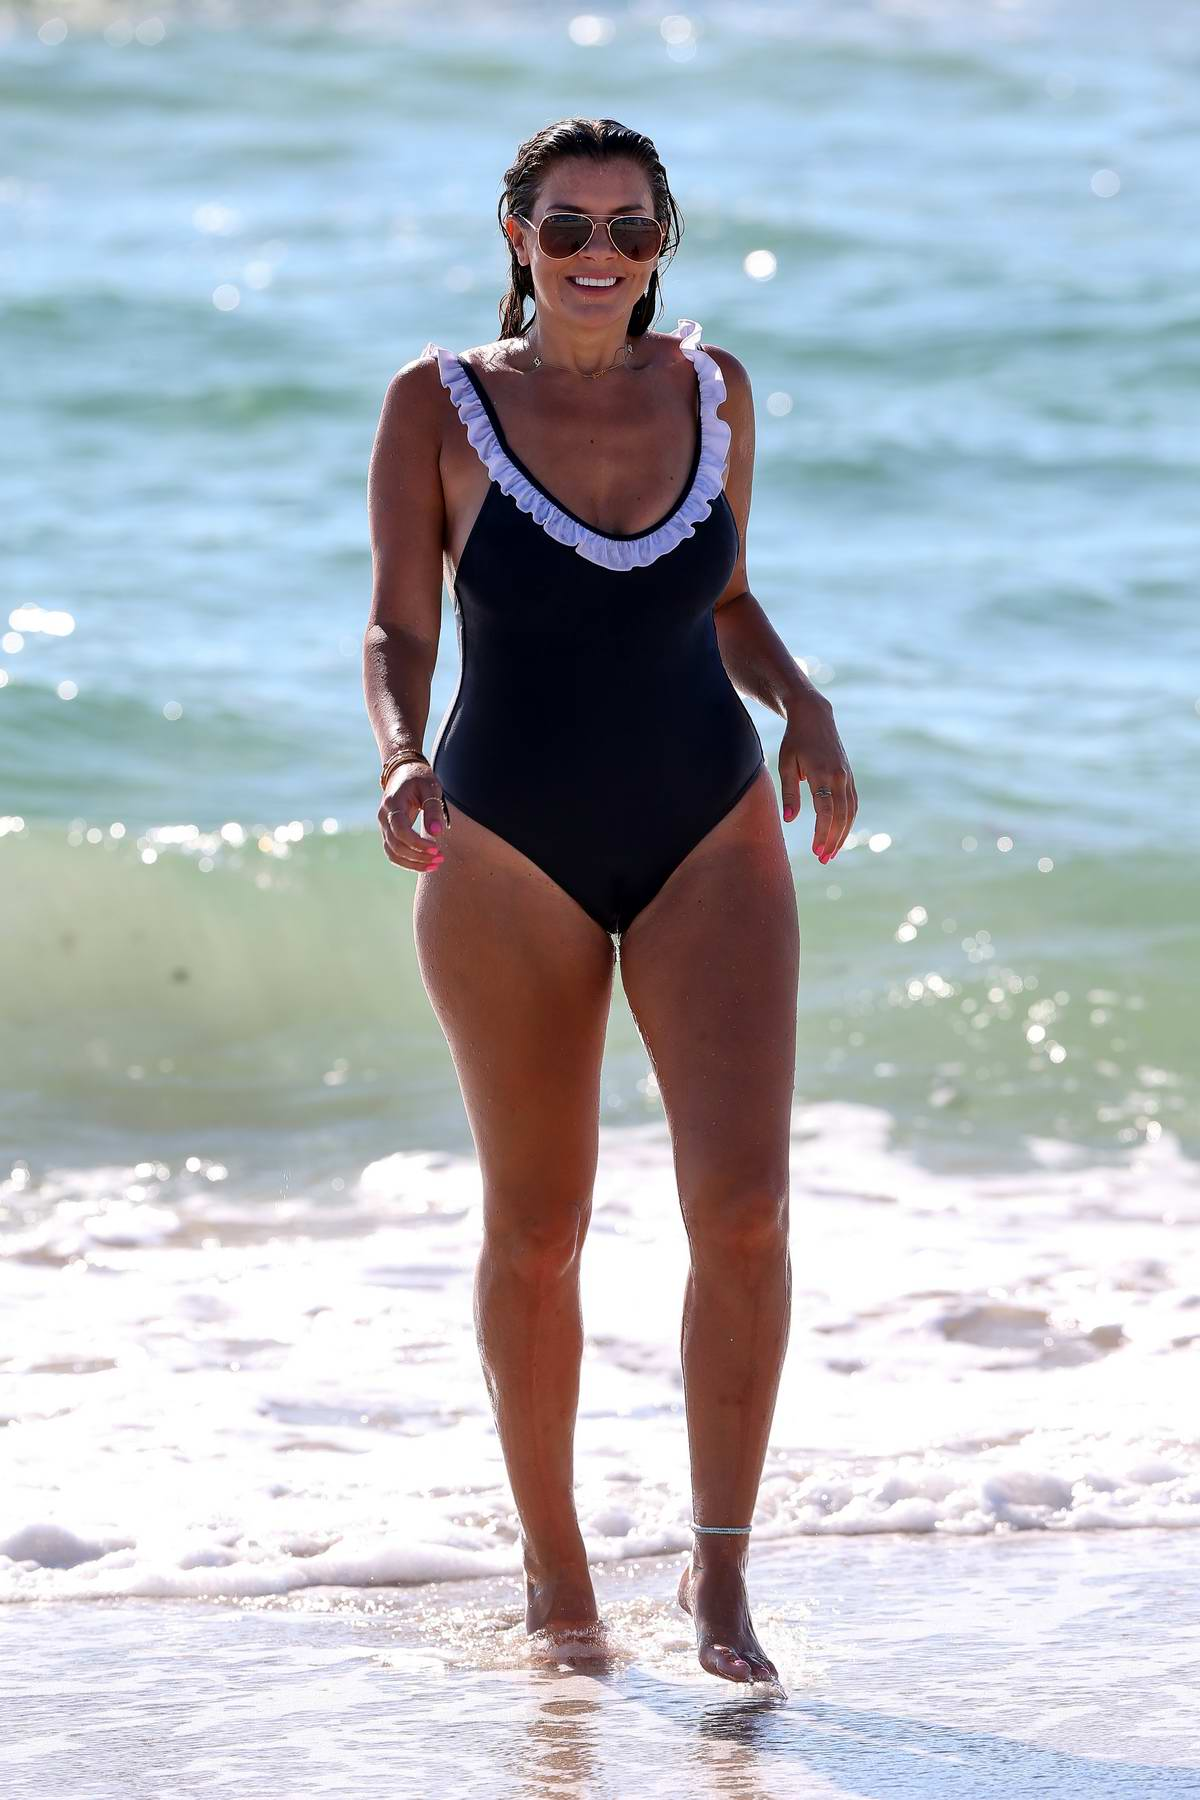 Imogen Thomas goes for a swim in a blue swimsuit in Miami, Florida